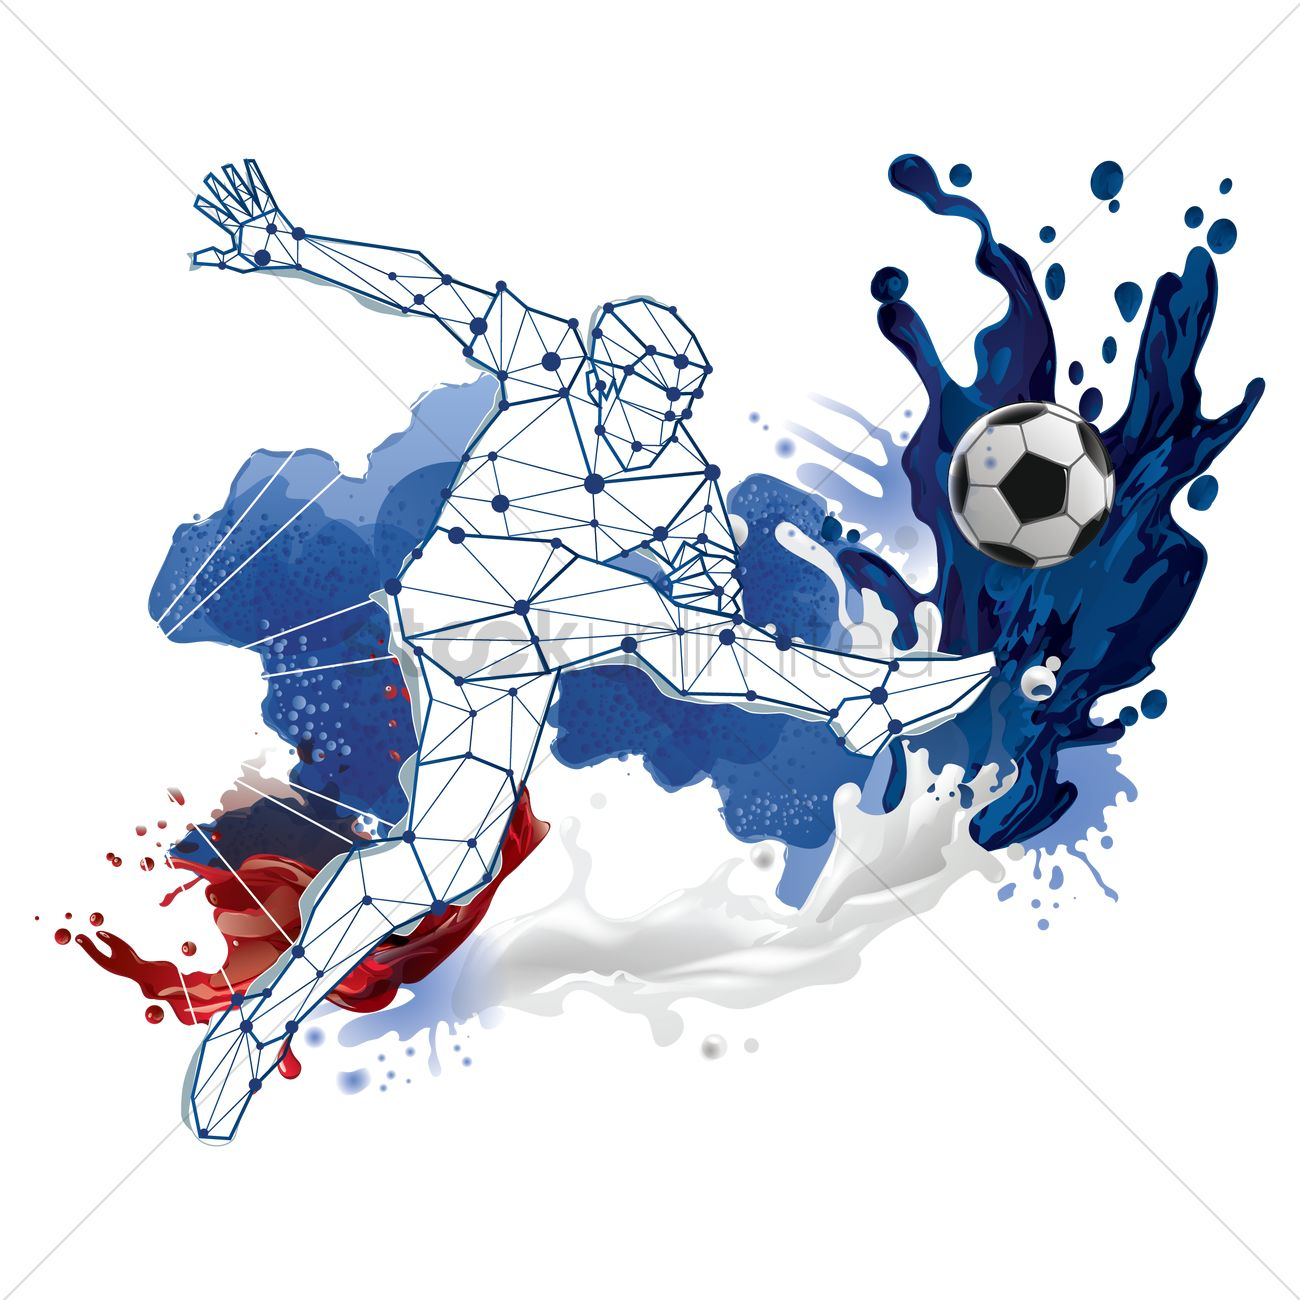 Abstract soccer player design Vector Image.